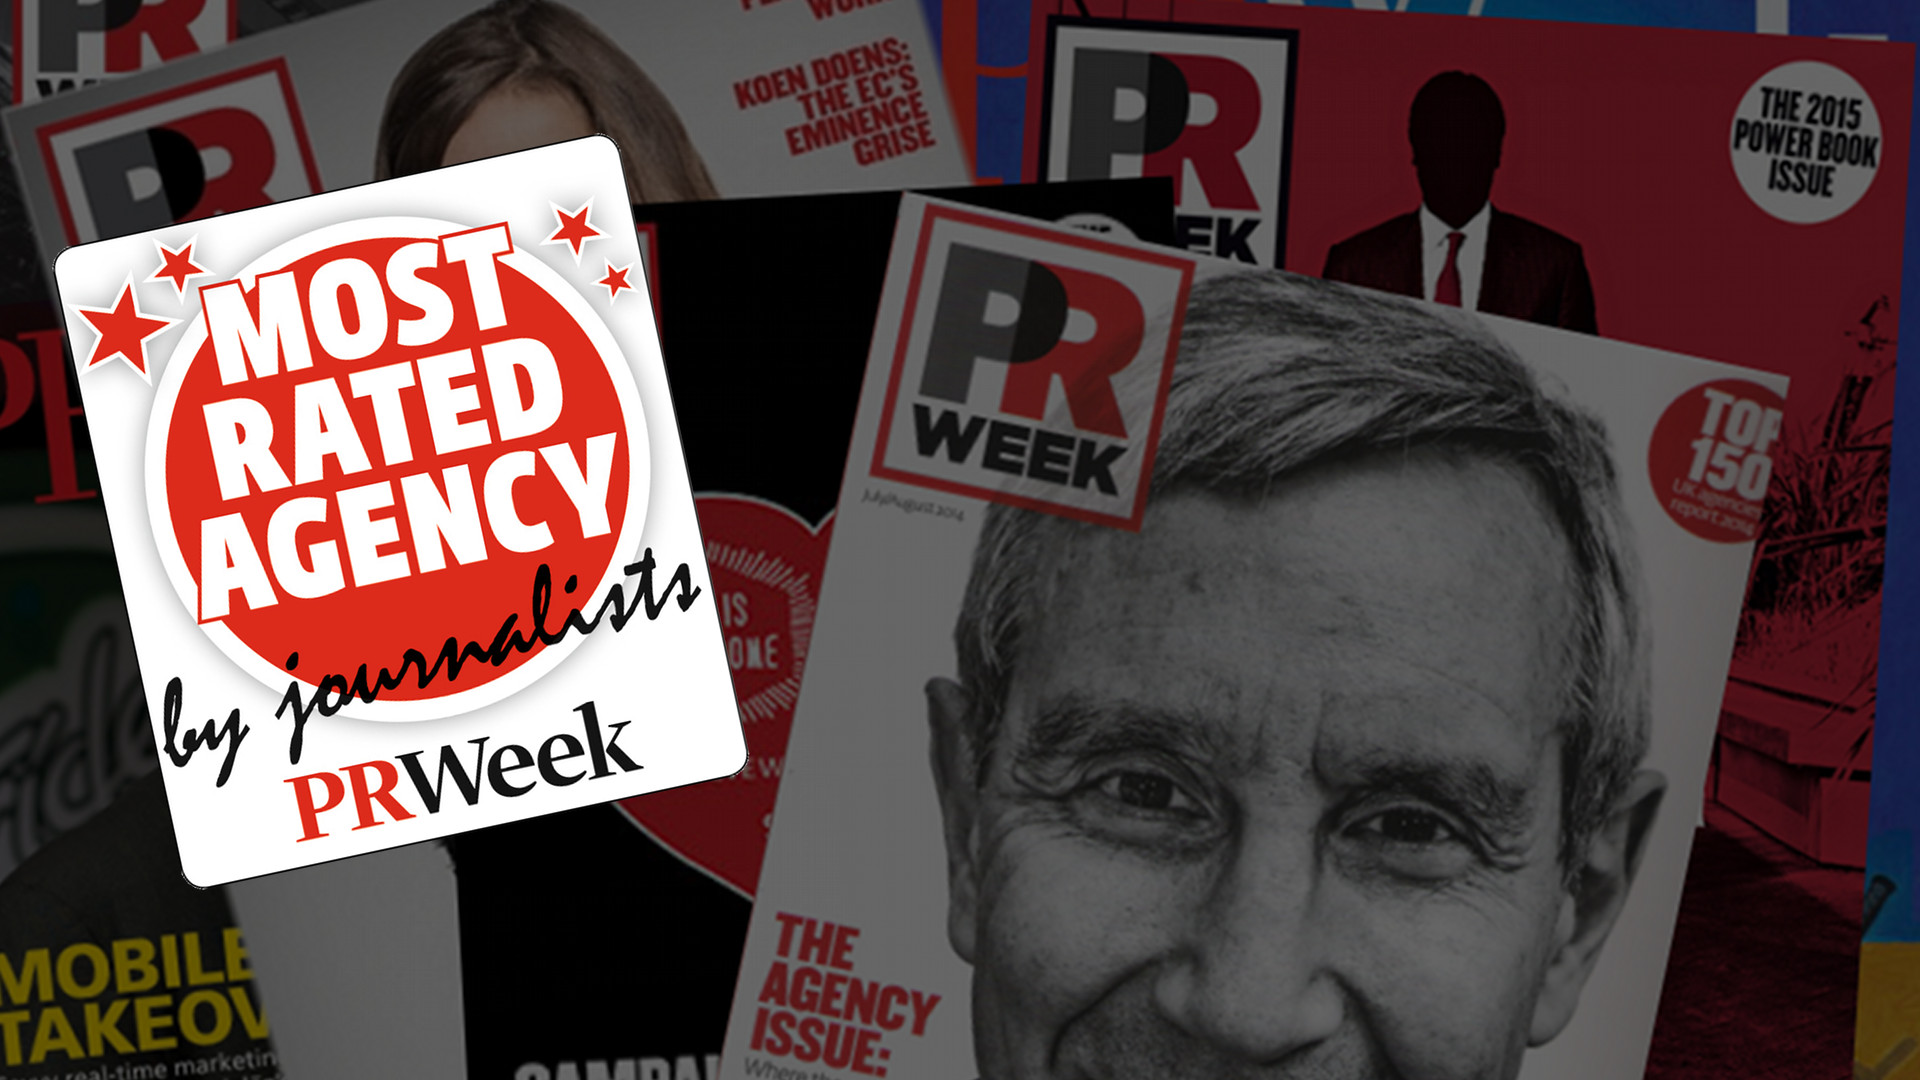 itpr Most Rated Agency by journalists